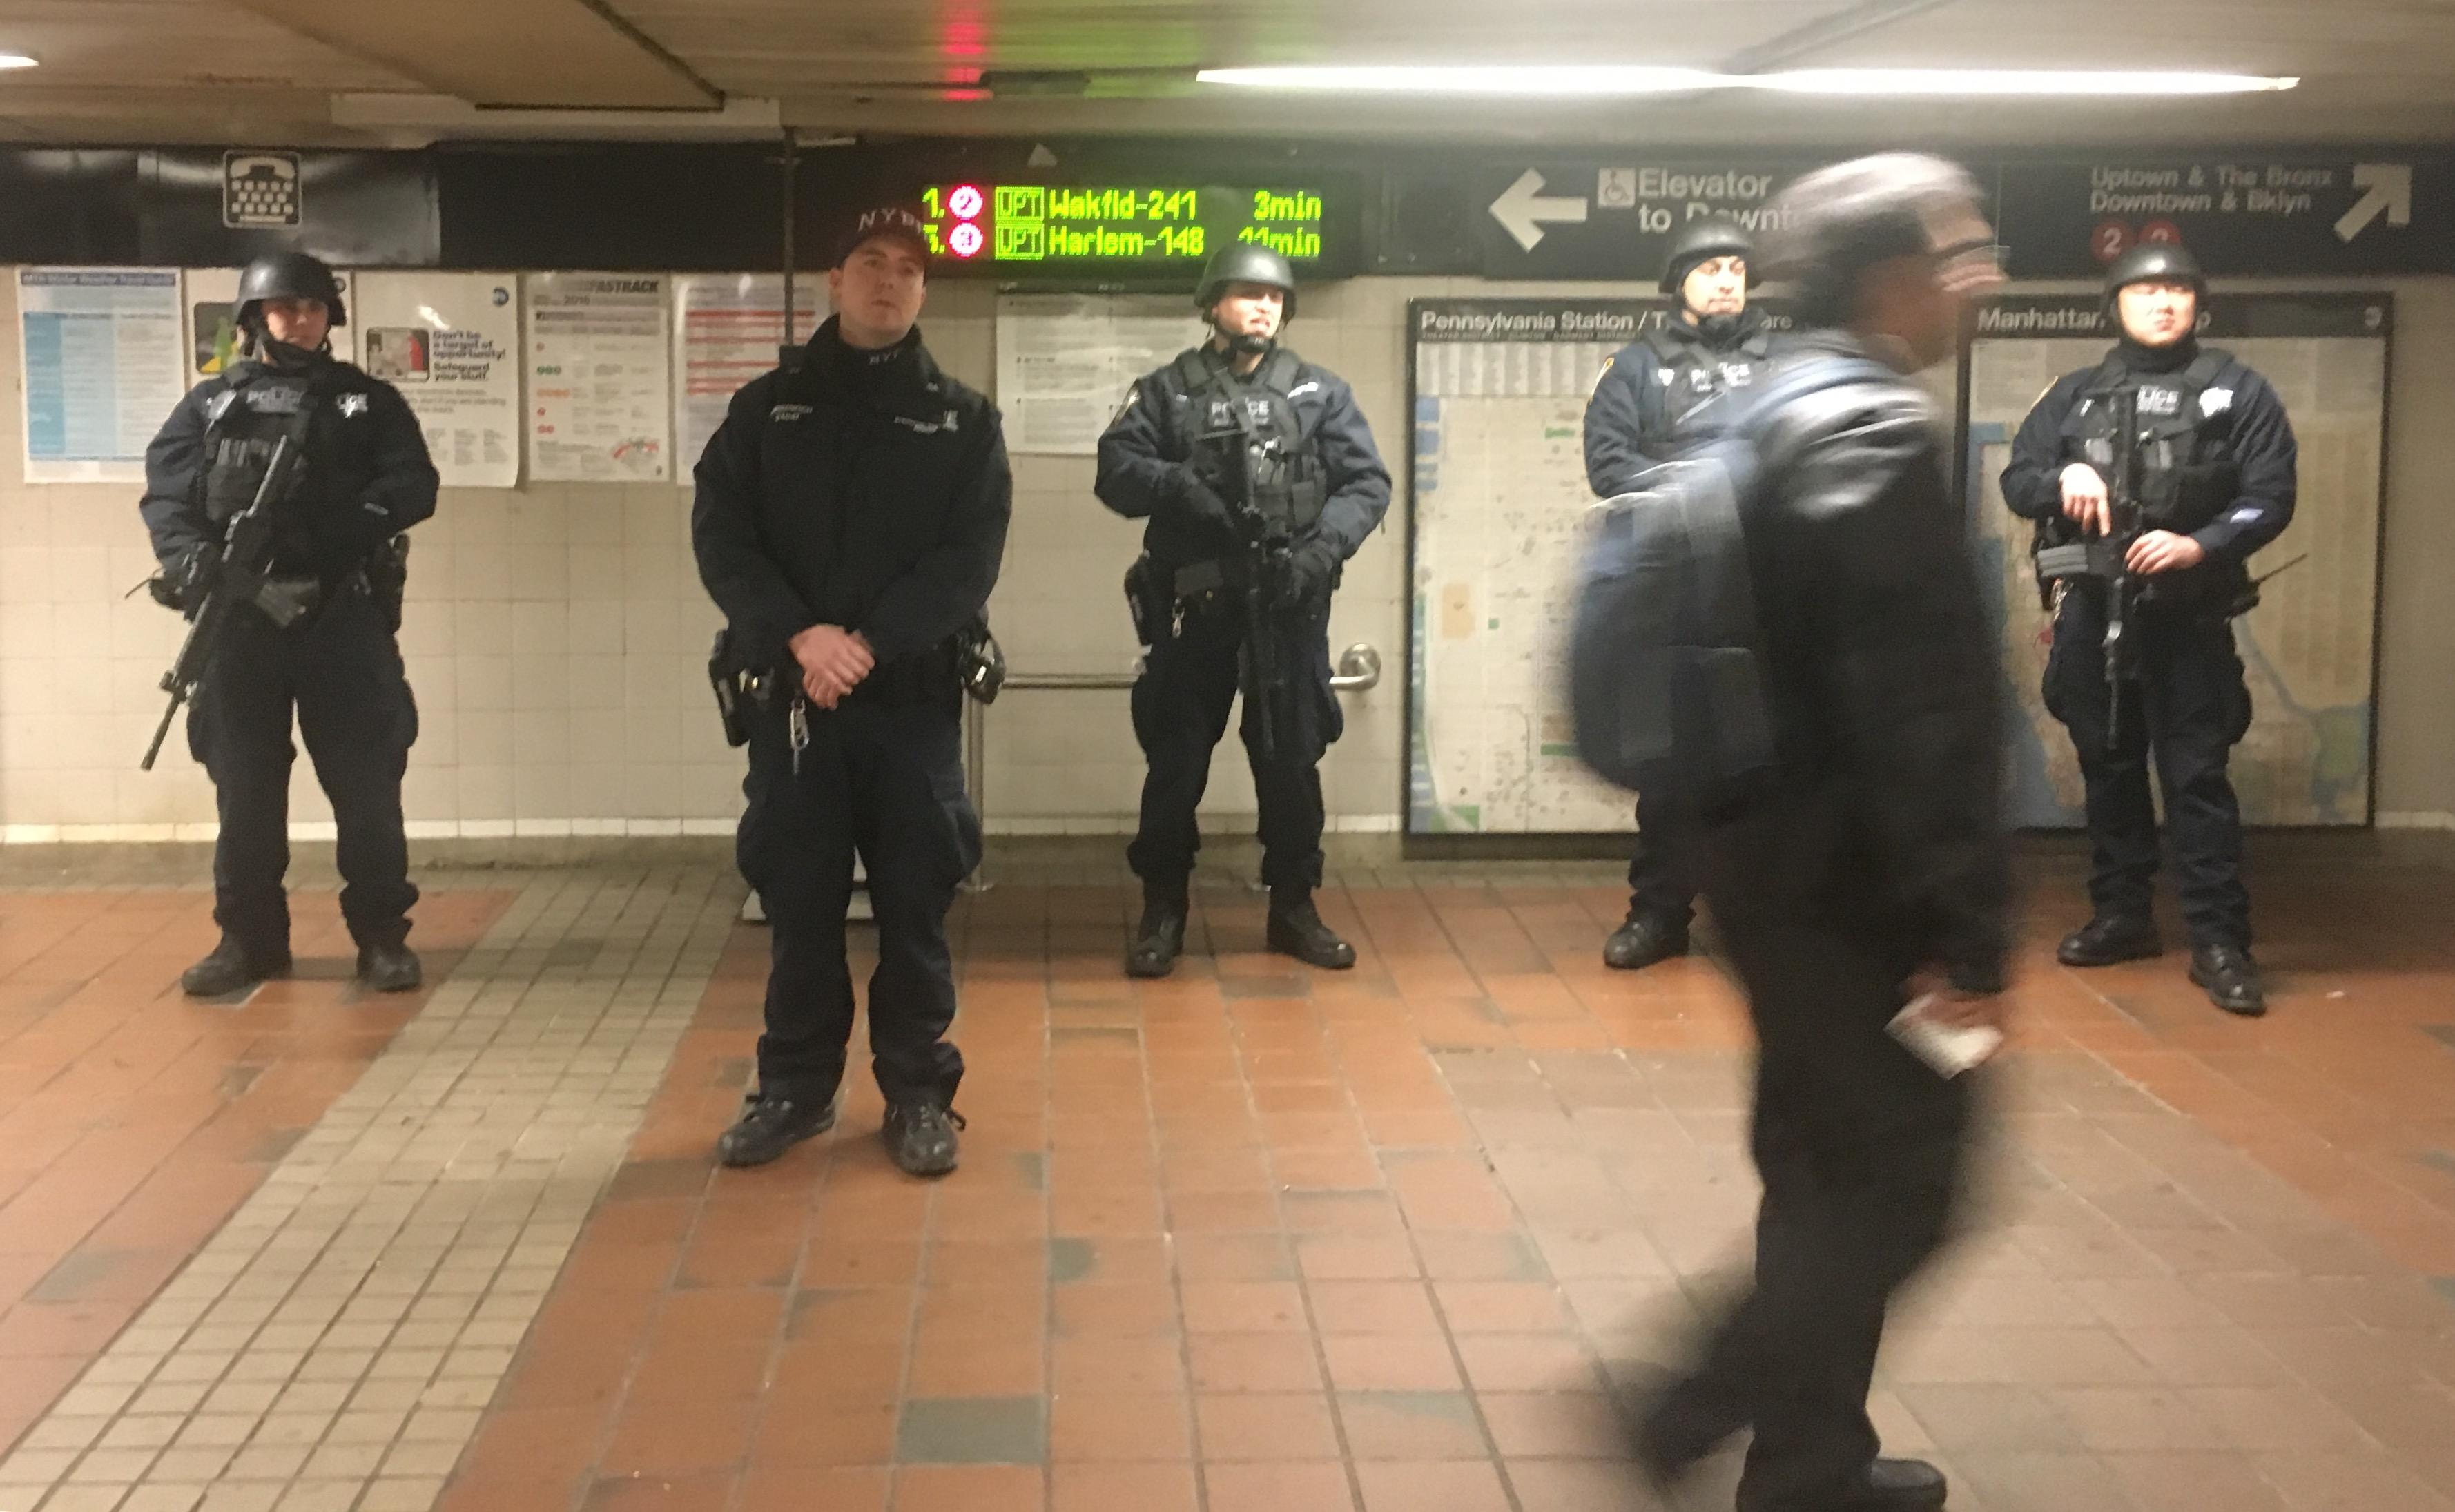 nyc terror alert security 1